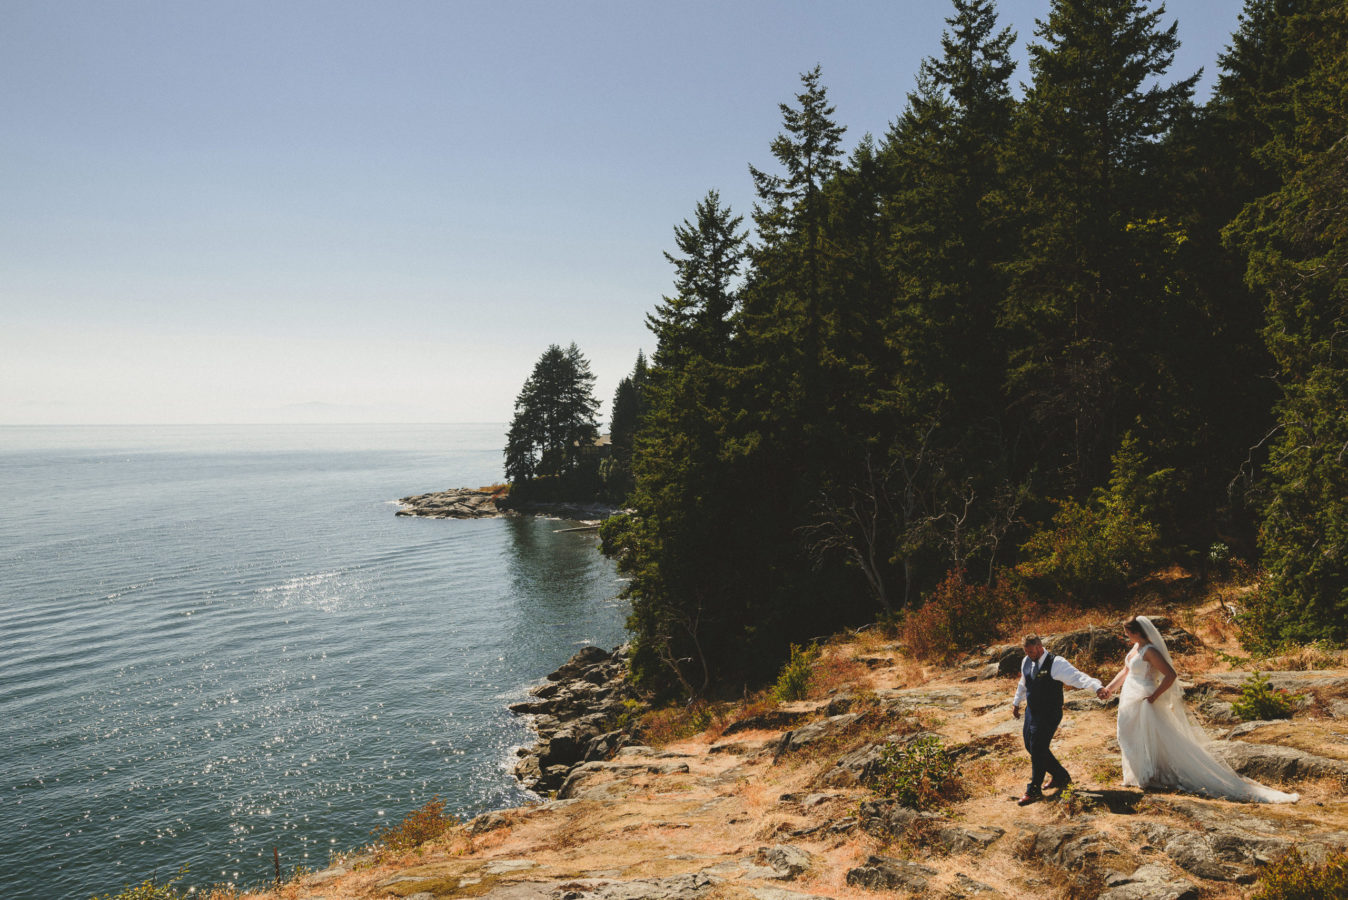 looking down on a bride and groom walking hand in hand out along a bluff overlooking the ocean